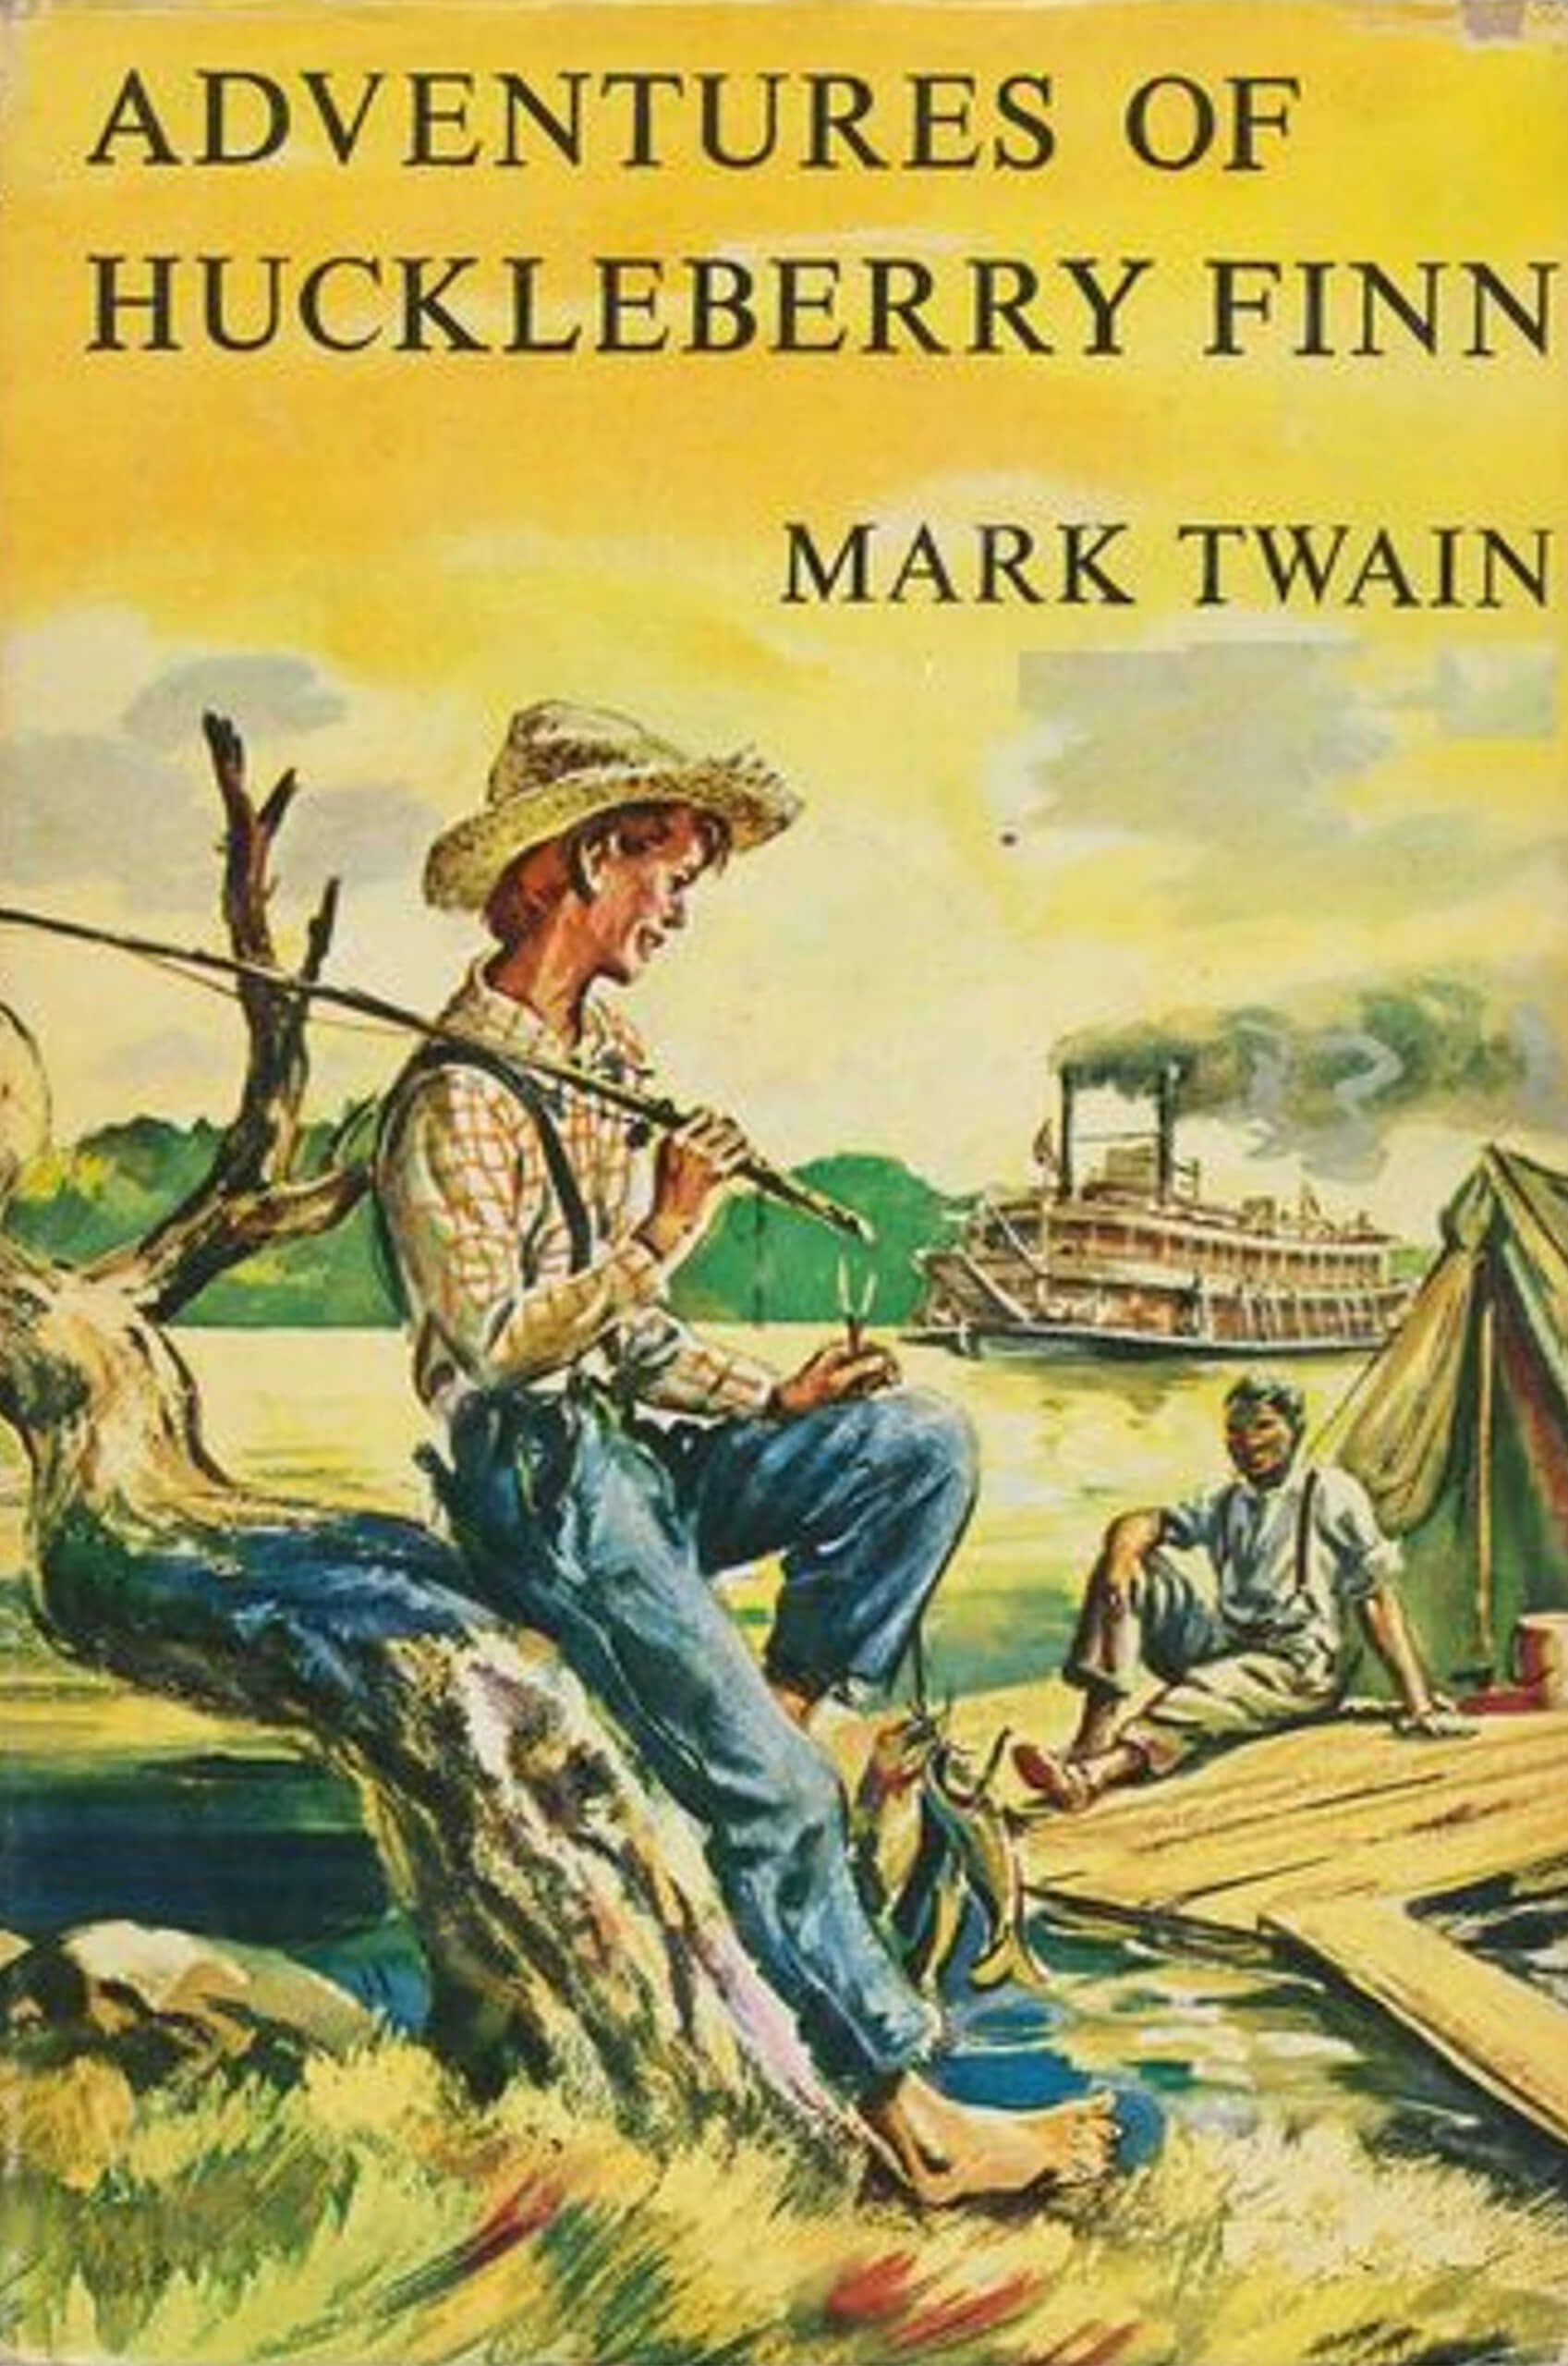 The Adventures of Huckleberry Finn Novel by Mark Twain